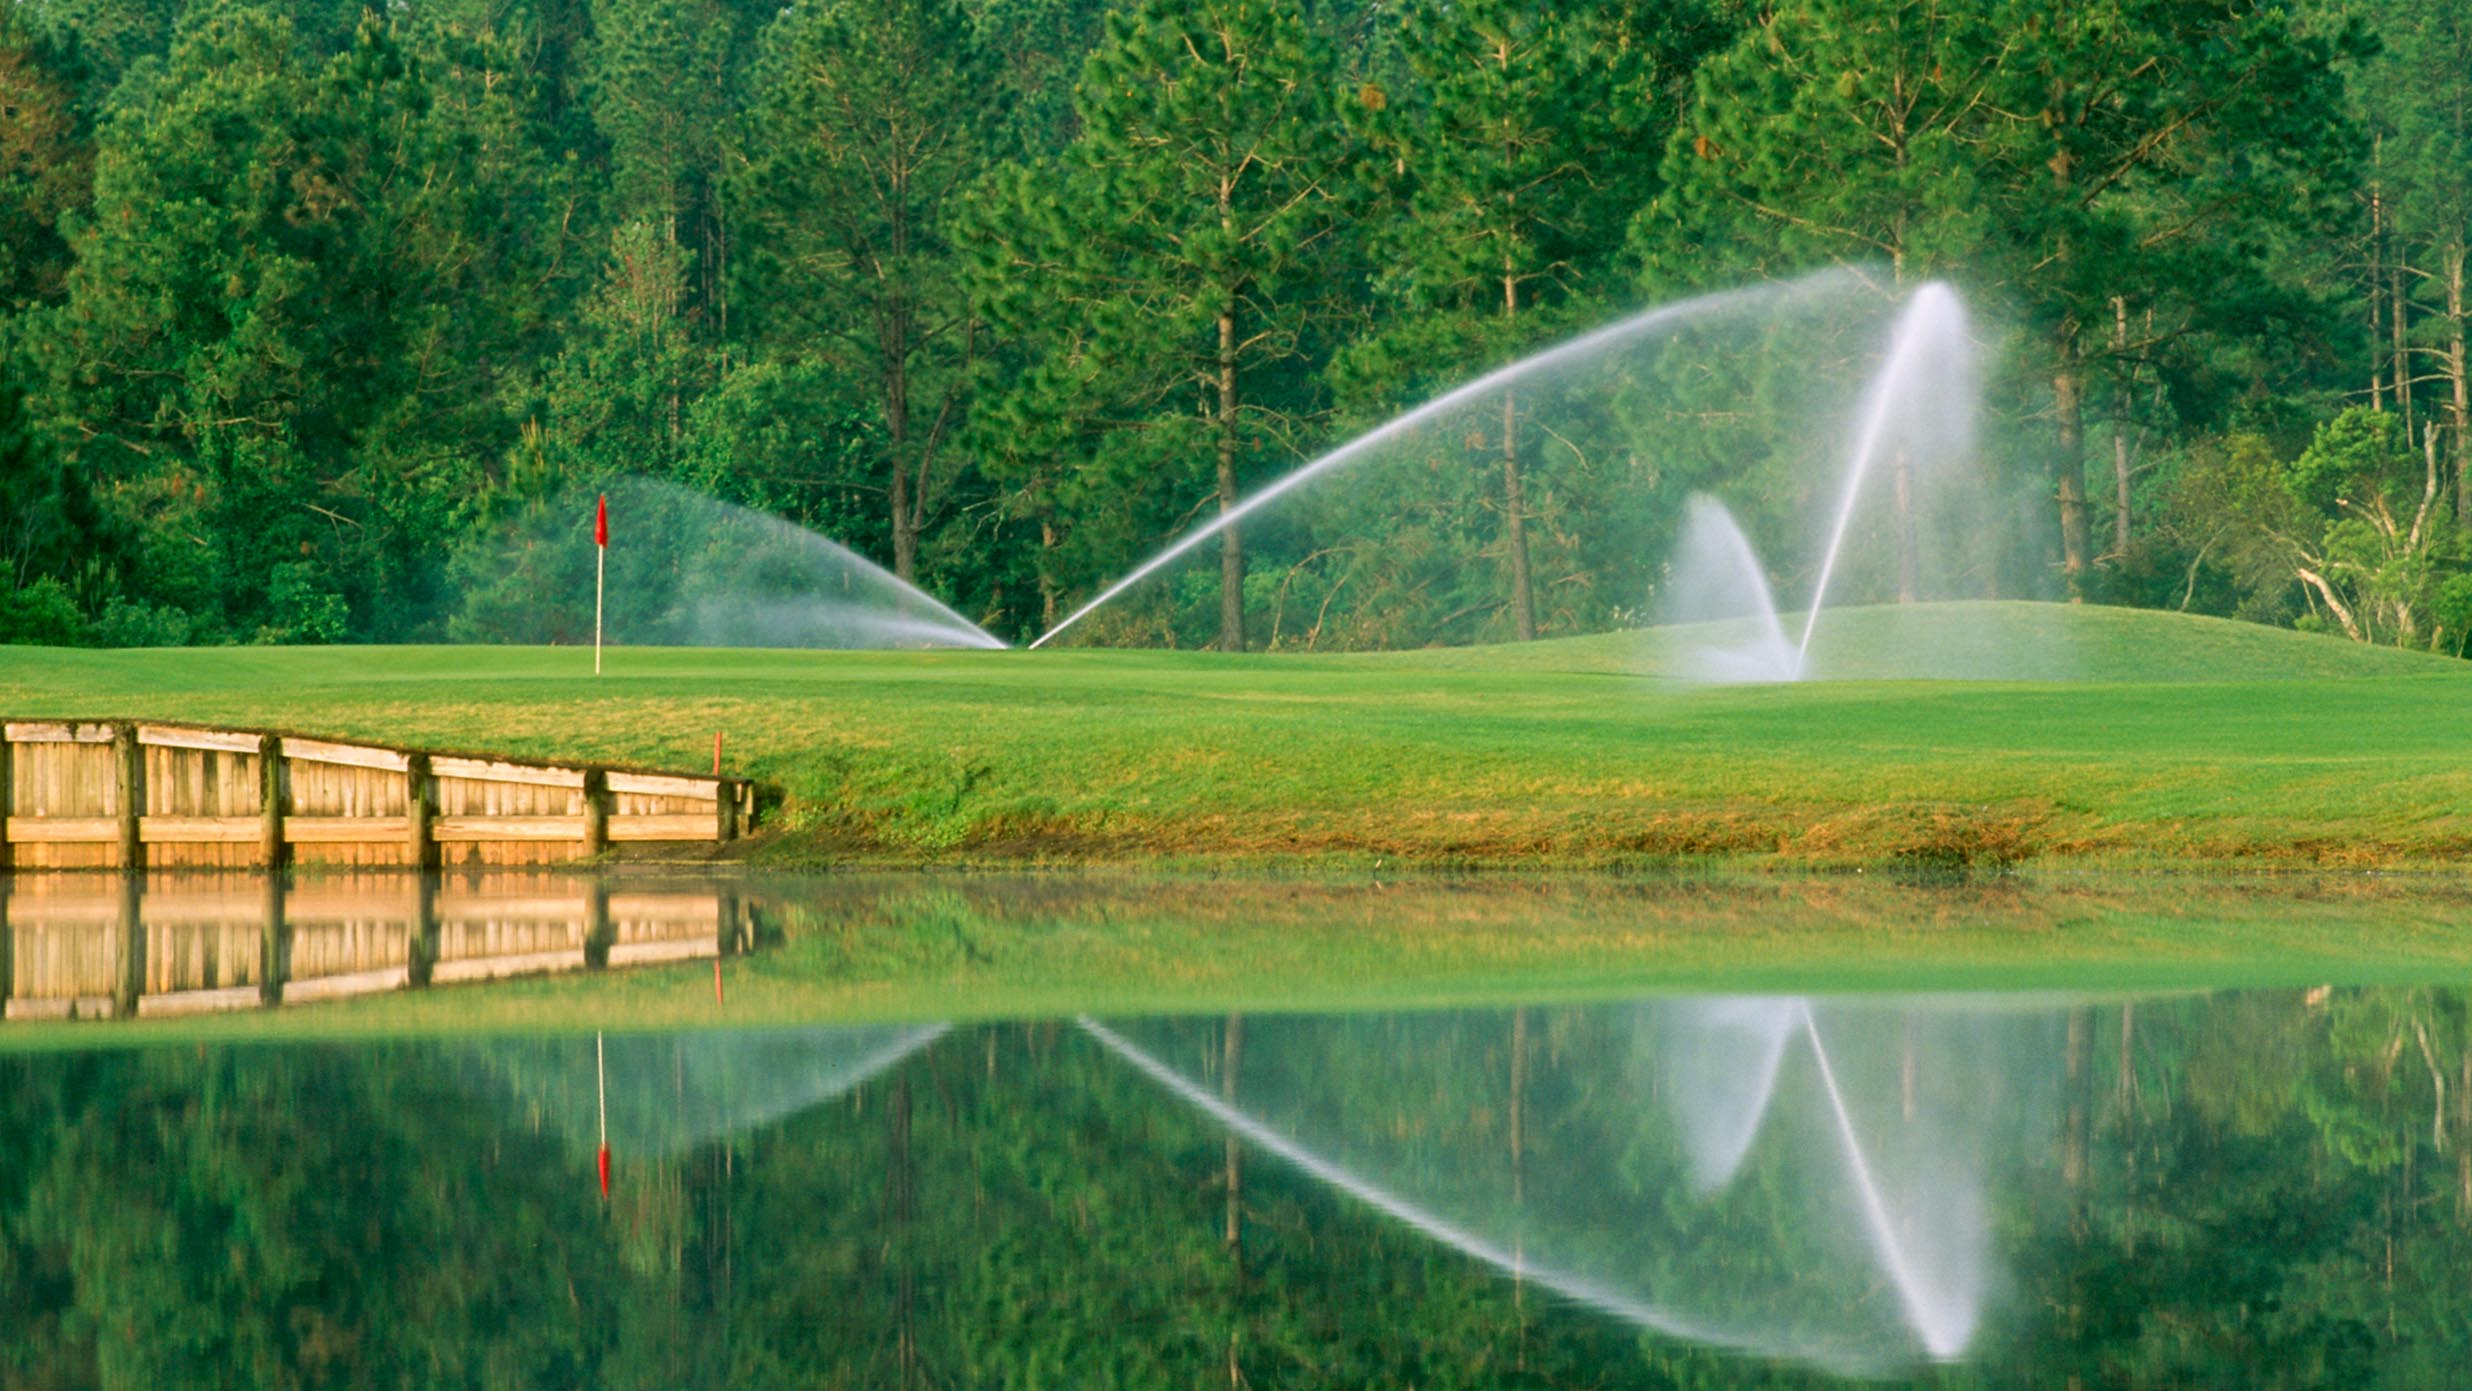 Sprinklers spraying water on a golf coarse